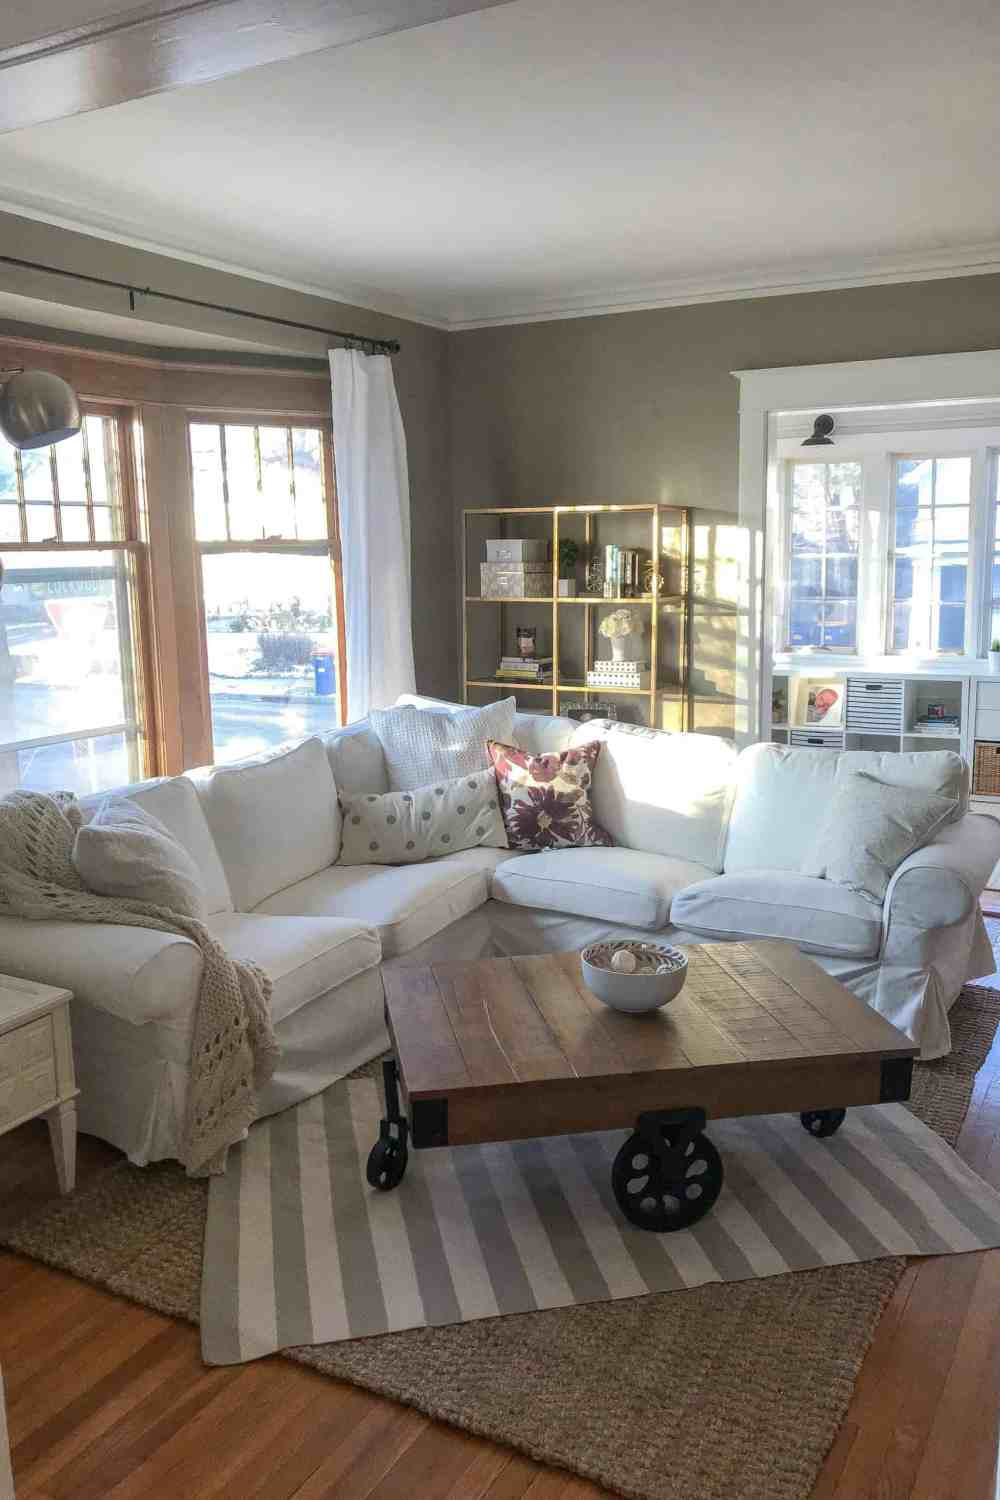 Before & After Living Room Renovation featured by top Michigan lifestyle blog, House of Navy